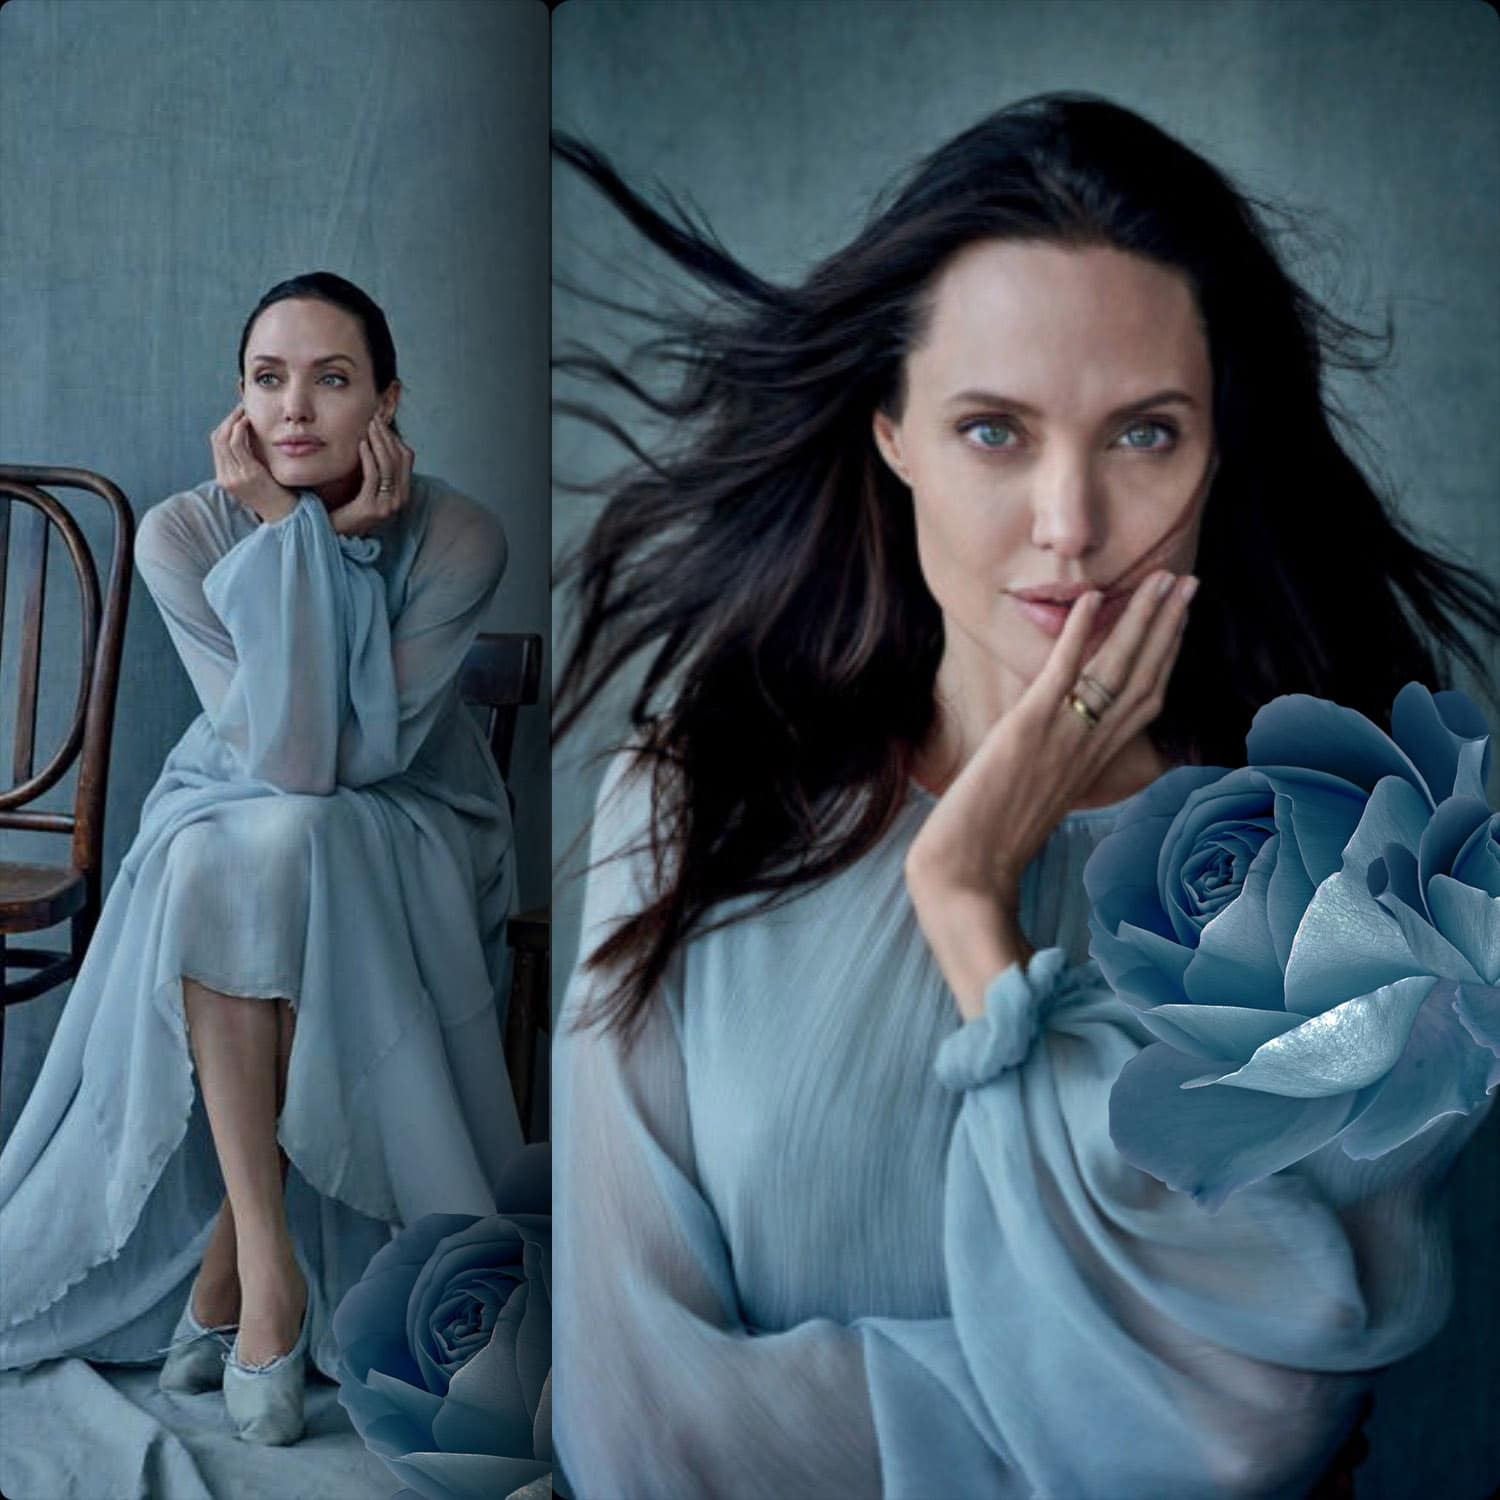 Angelina Jolie wearing Luisa Beccaria. Vanity Fair Italia Cover Story. Photo by Peter Lindbergh